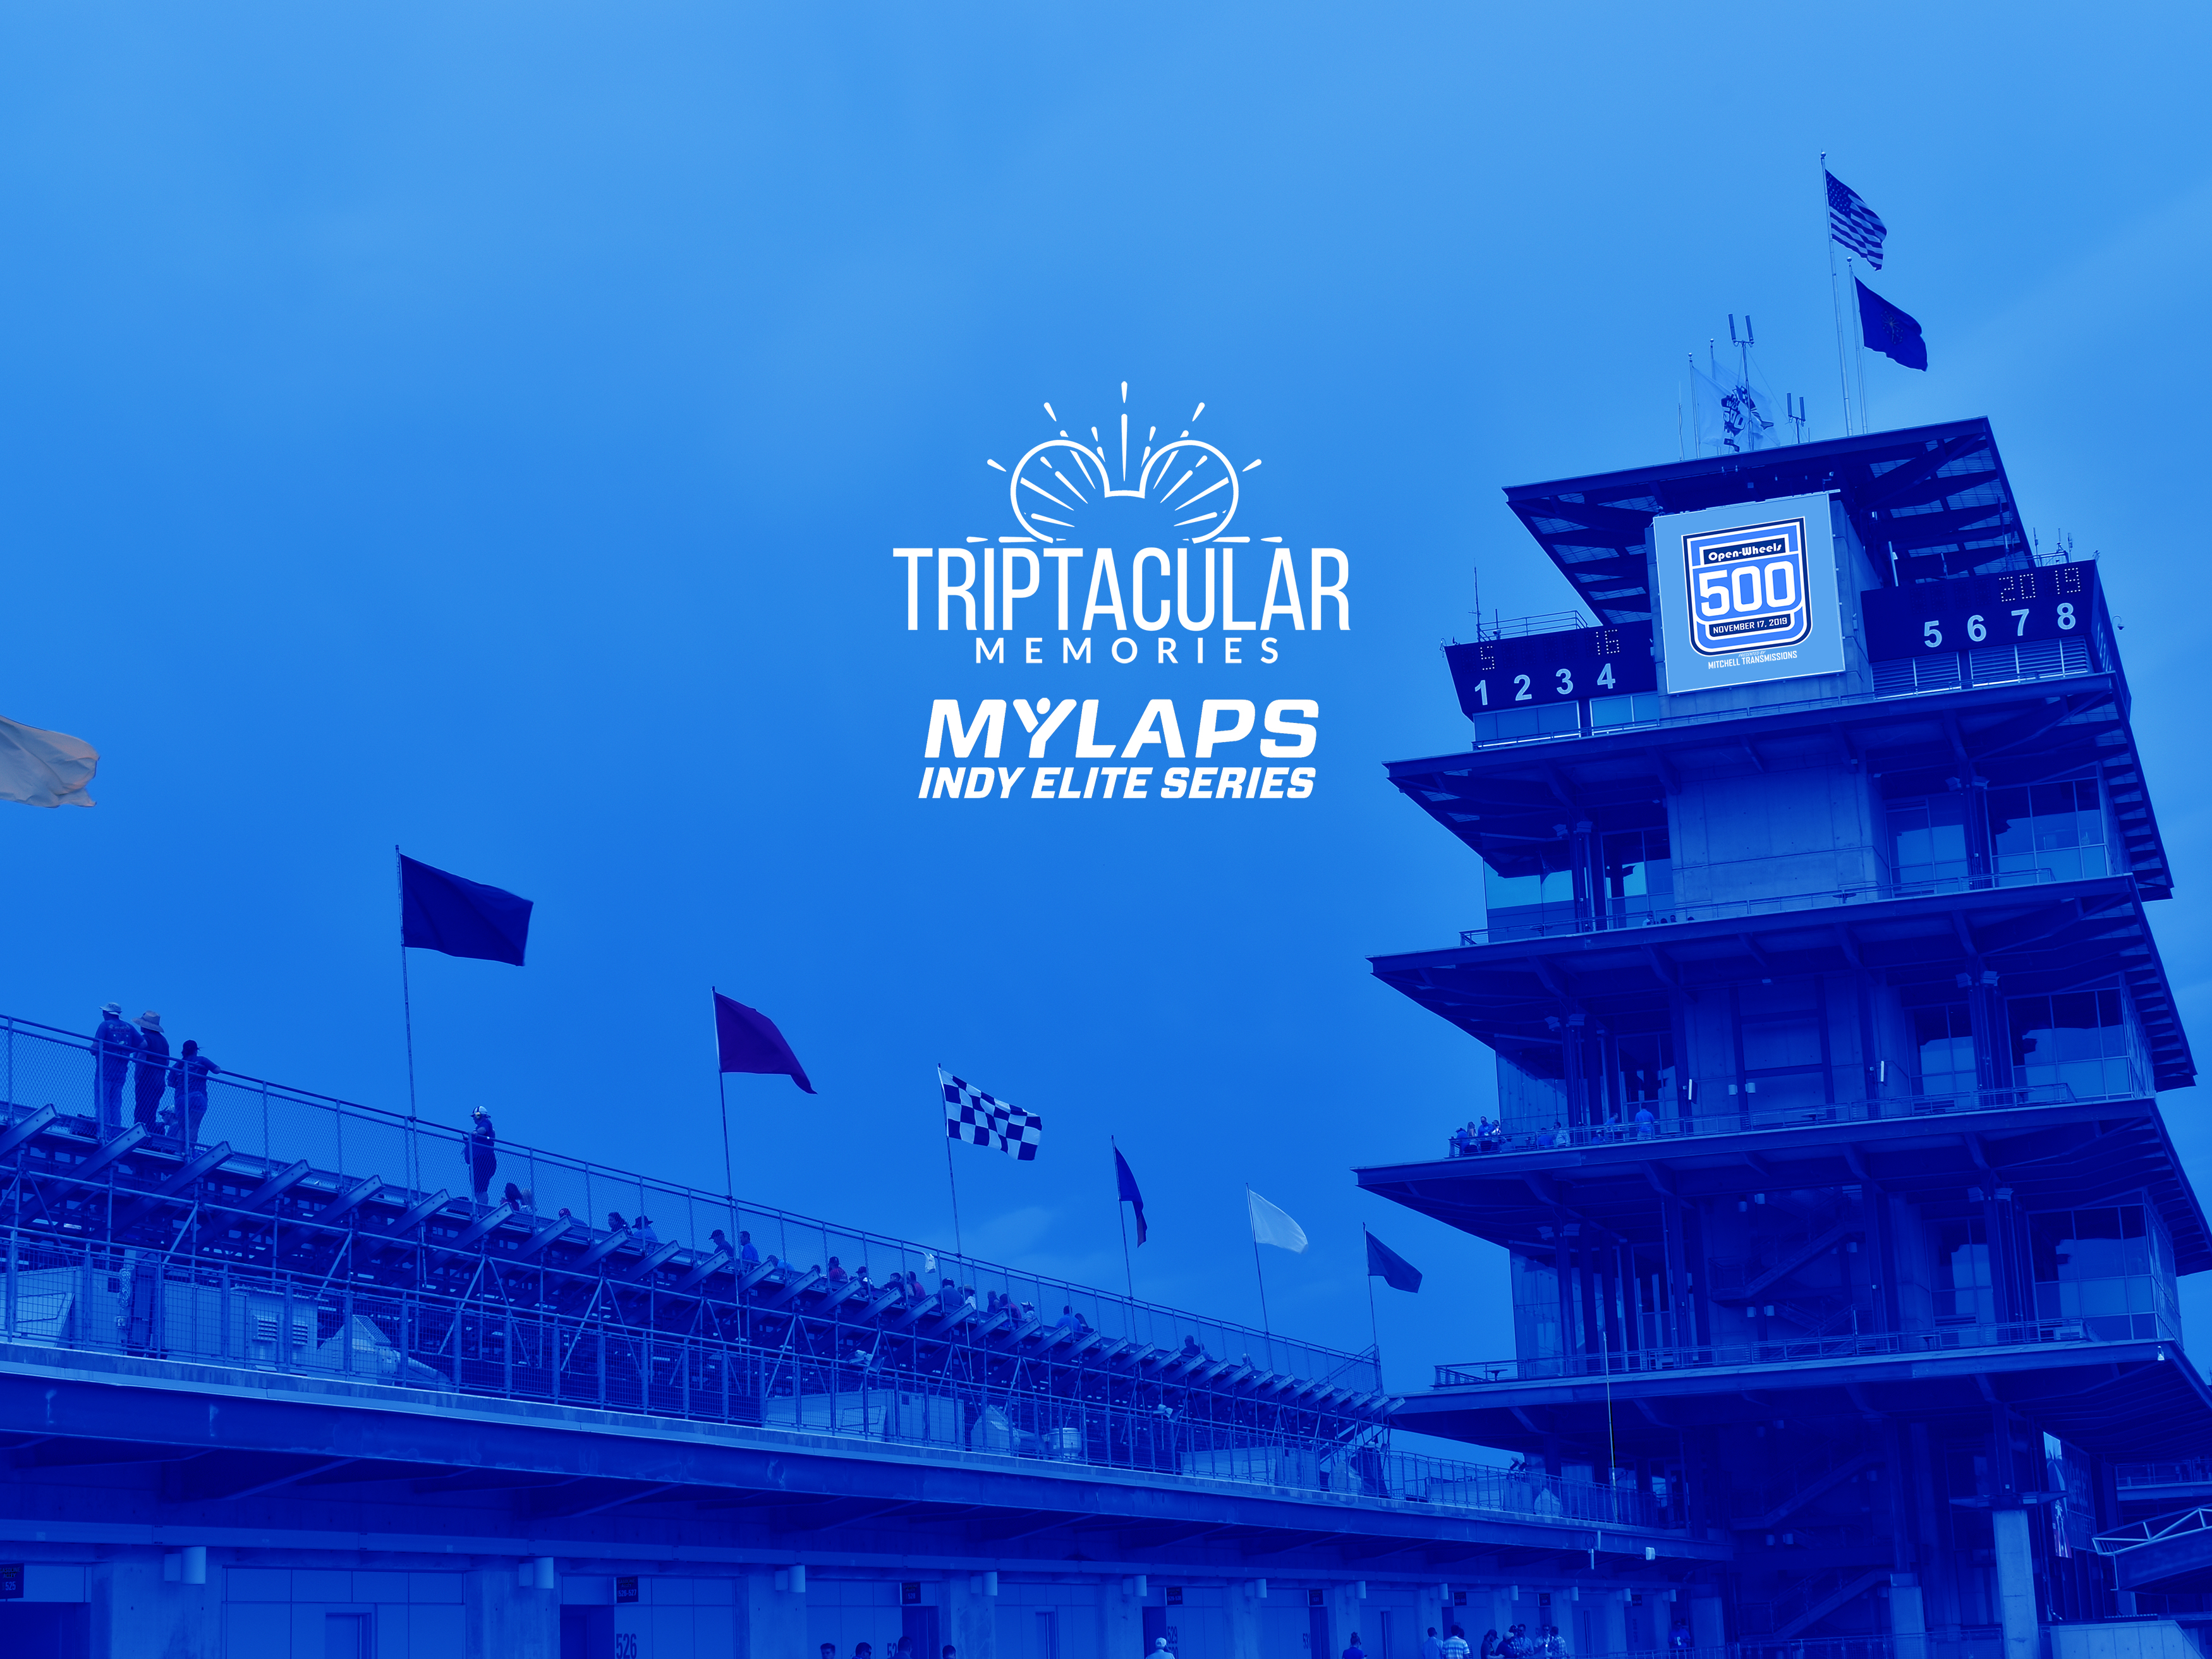 MYLAPS Indy Elite Series, Triptacular Memories partner with inaugural Open-Wheels 500 Mile Race